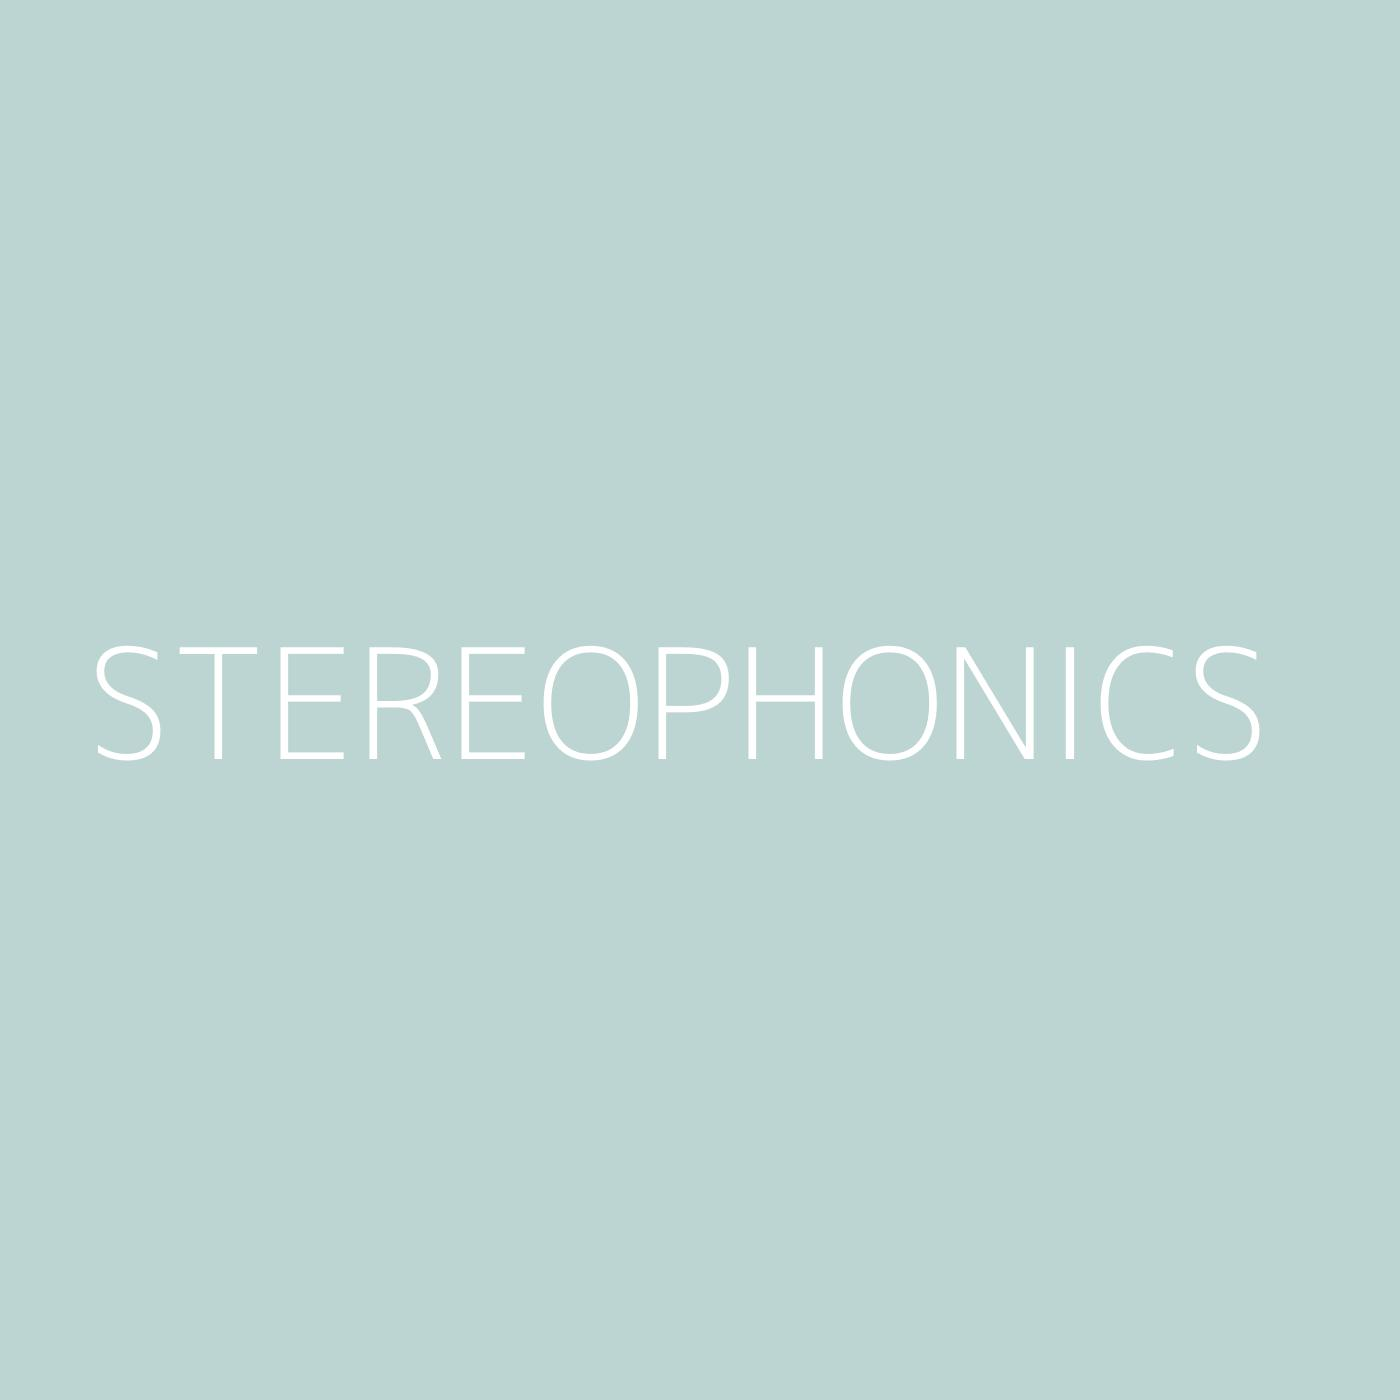 Stereophonics Playlist Artwork